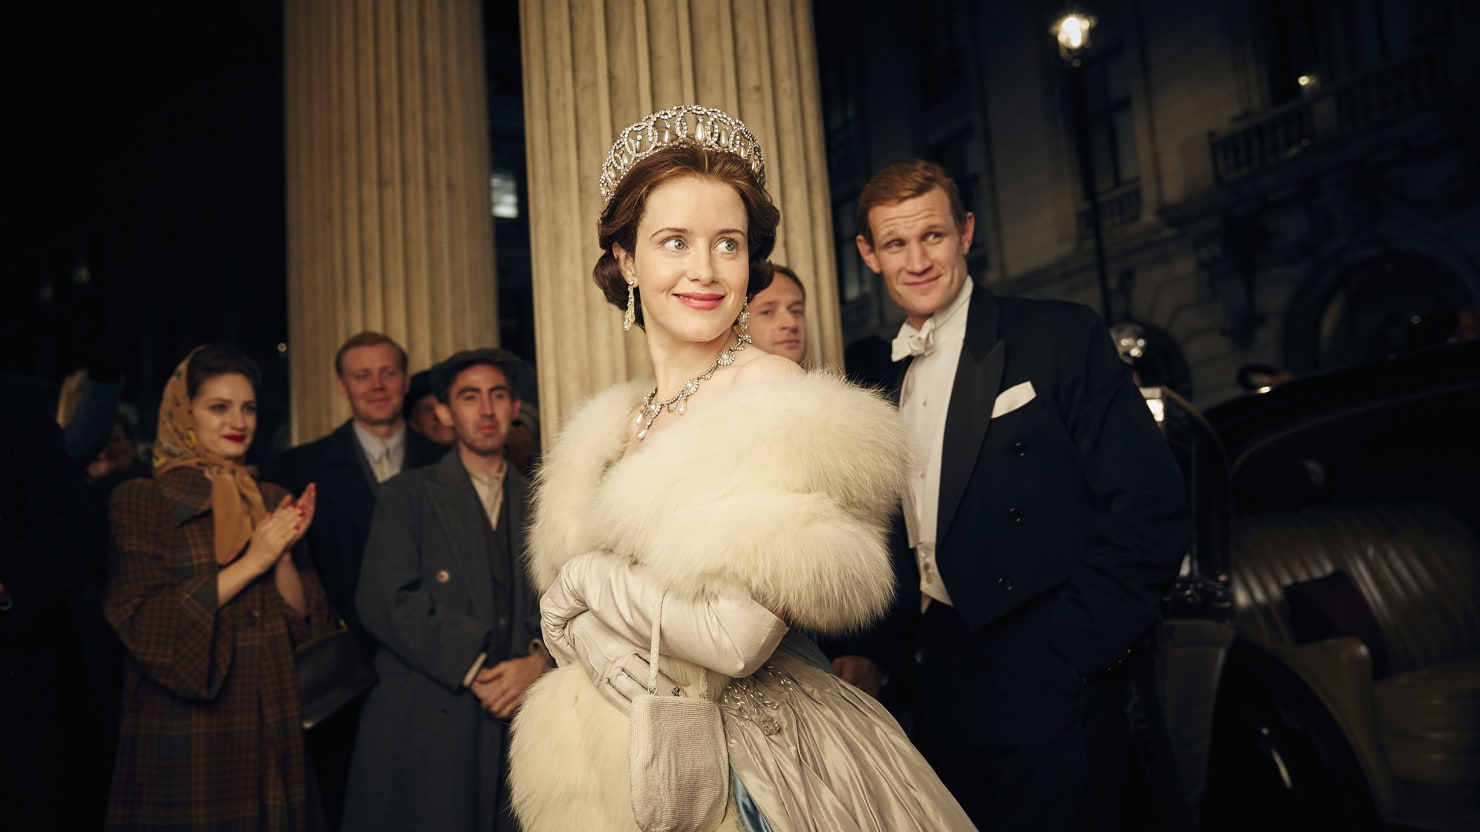 Inside Netflixs 130 Million The Crown the Most Expensive TV